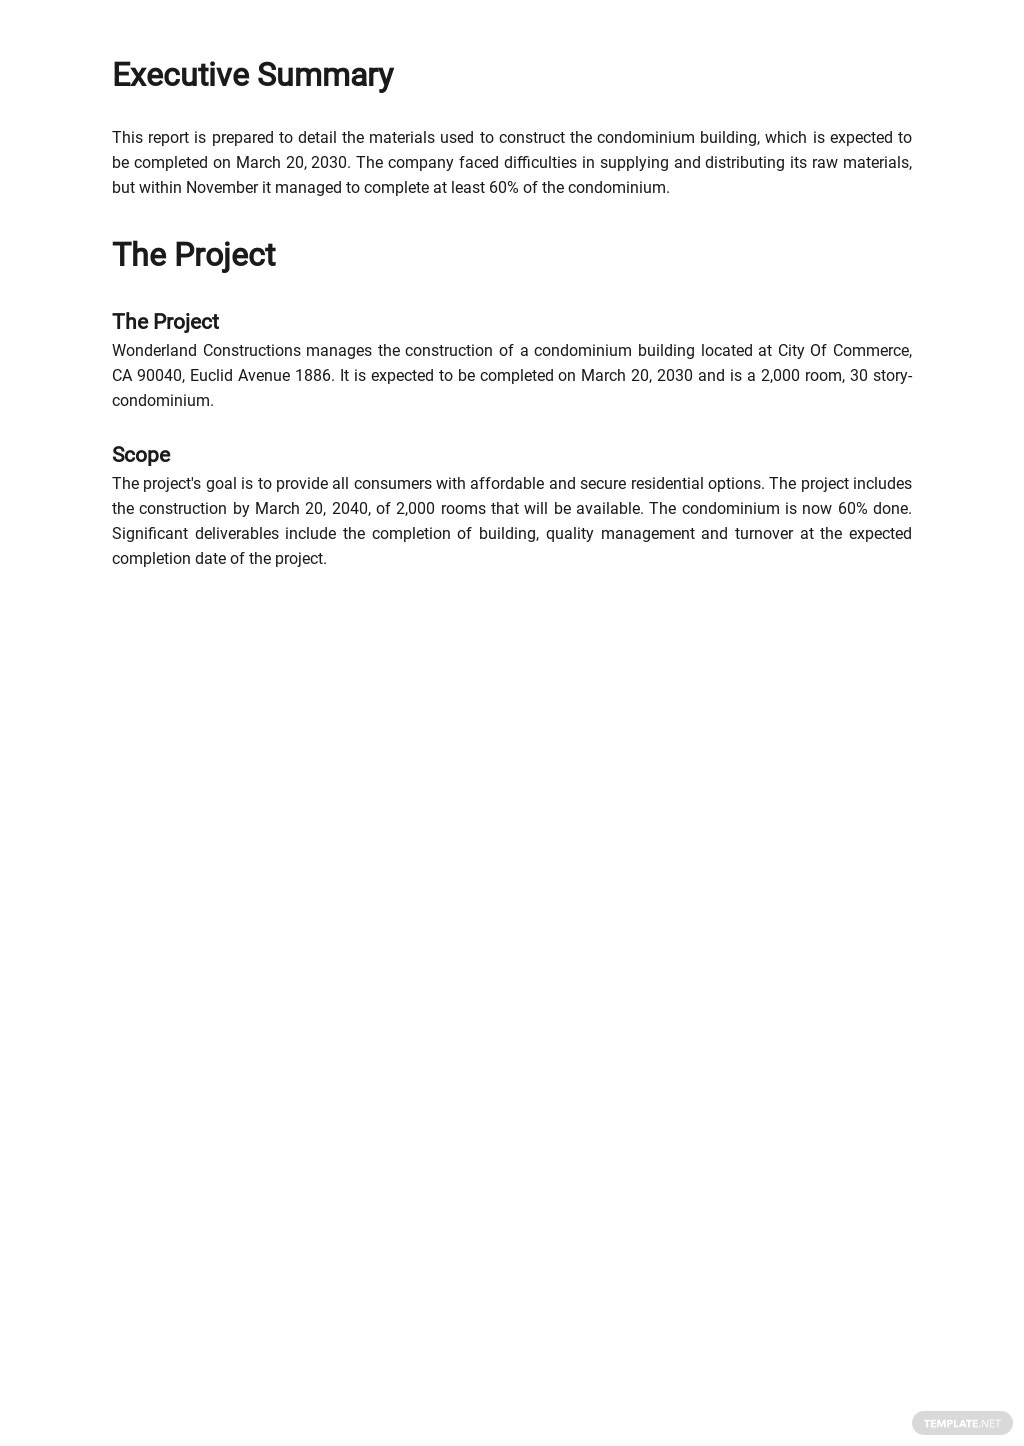 Free Daily Material Control Report Template 1.jpe